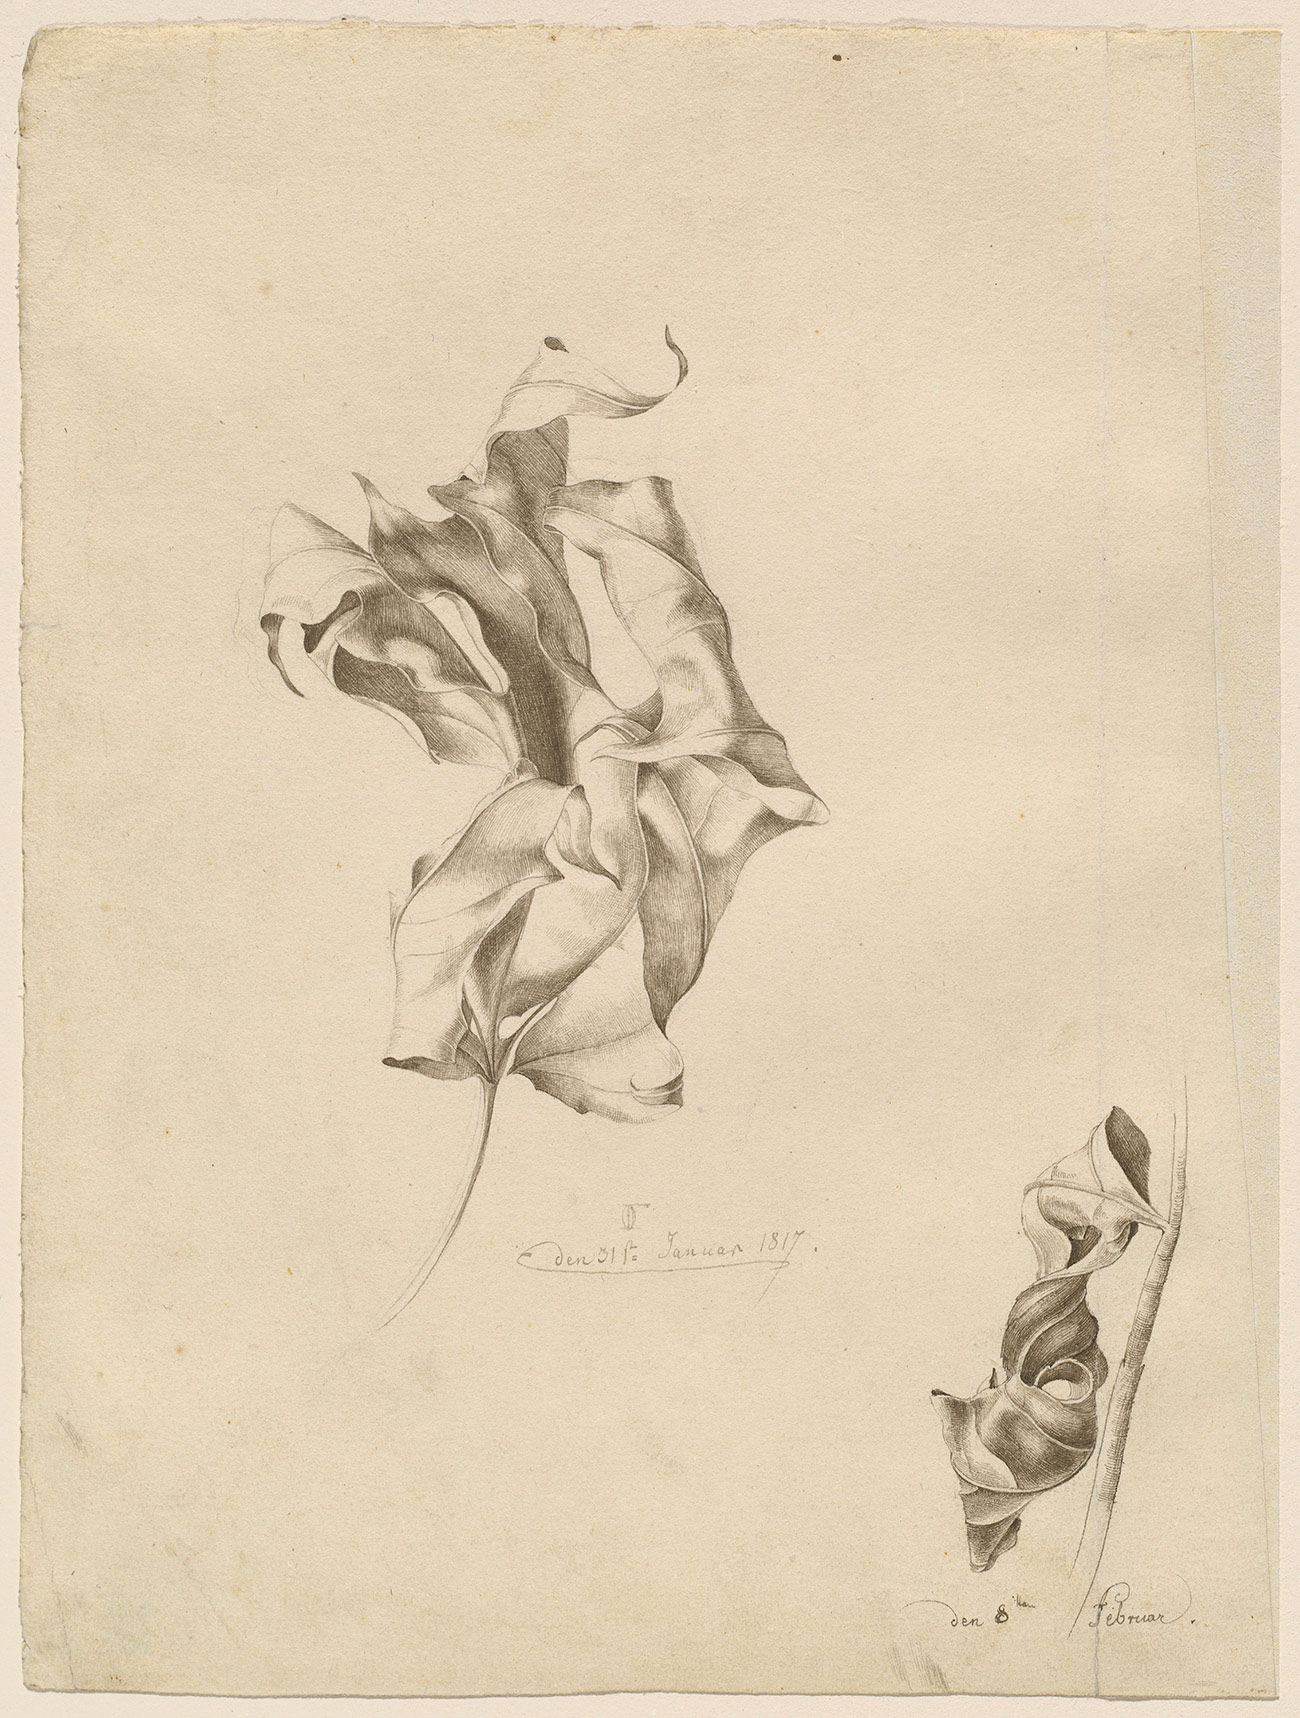 A cream-colored piece of paper holds two delicate sketches of dry, curled